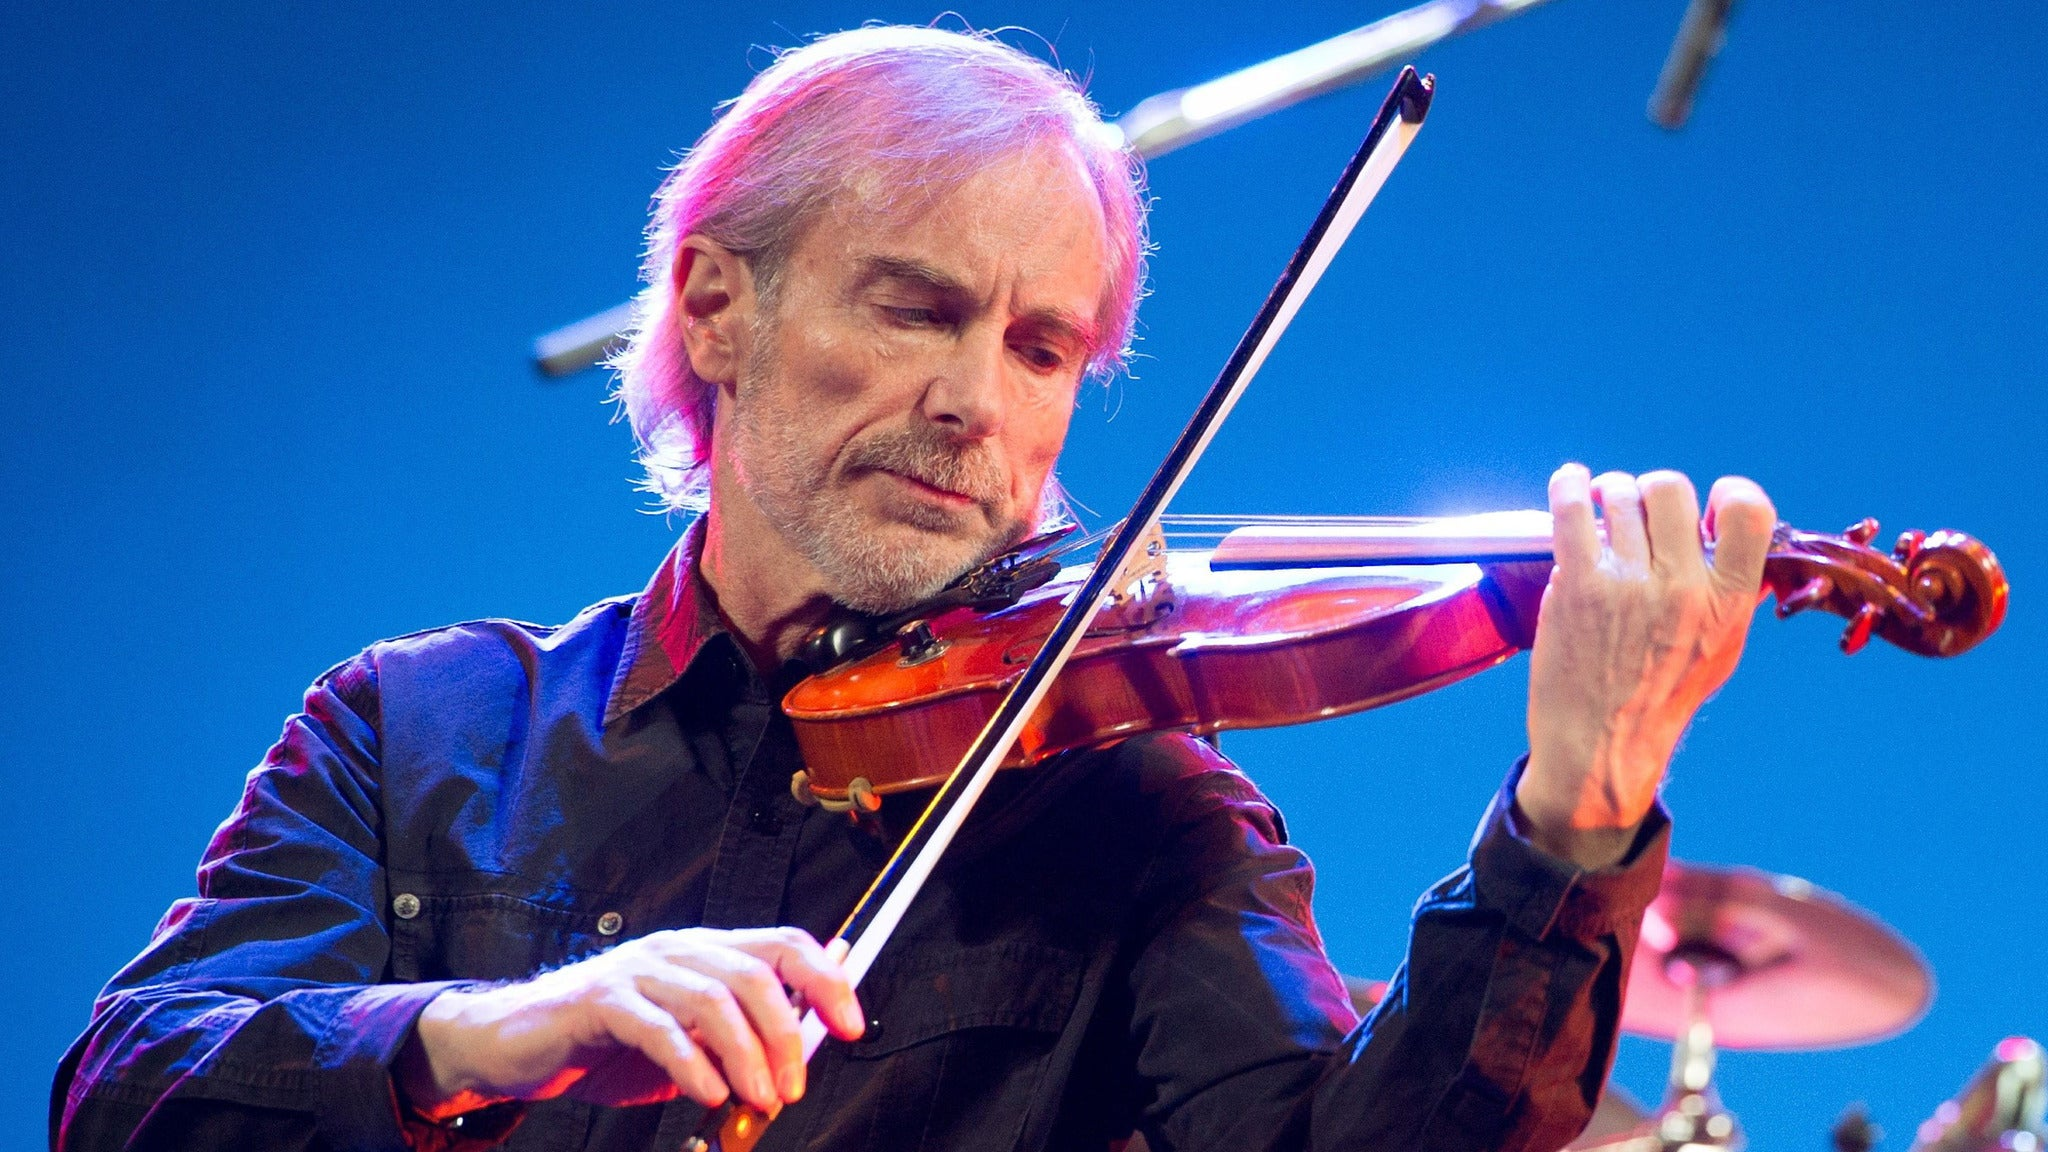 Jean Luc Ponty at Newton Theatre - Newton, NJ 07860